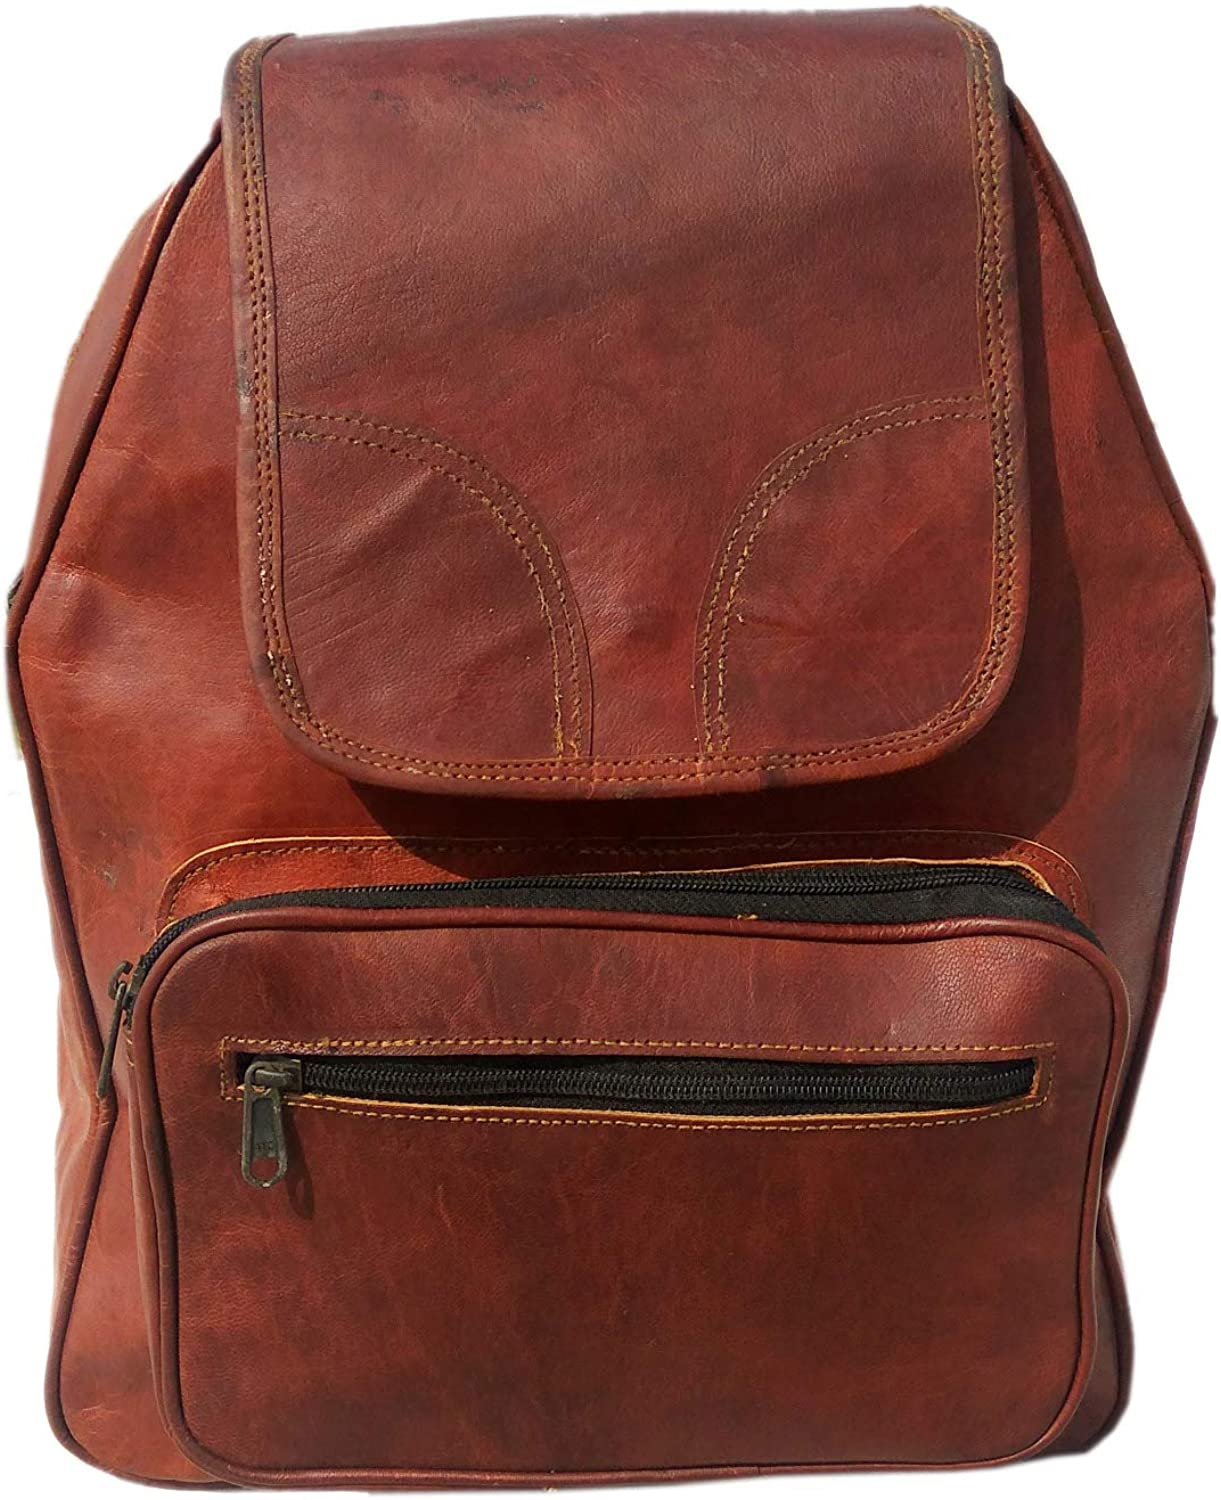 Desert Town Unisex Genuine Leather 4 LTR. Vintage Brown Basic Multi-Purpose DayPacks 12X16 -(BP107)